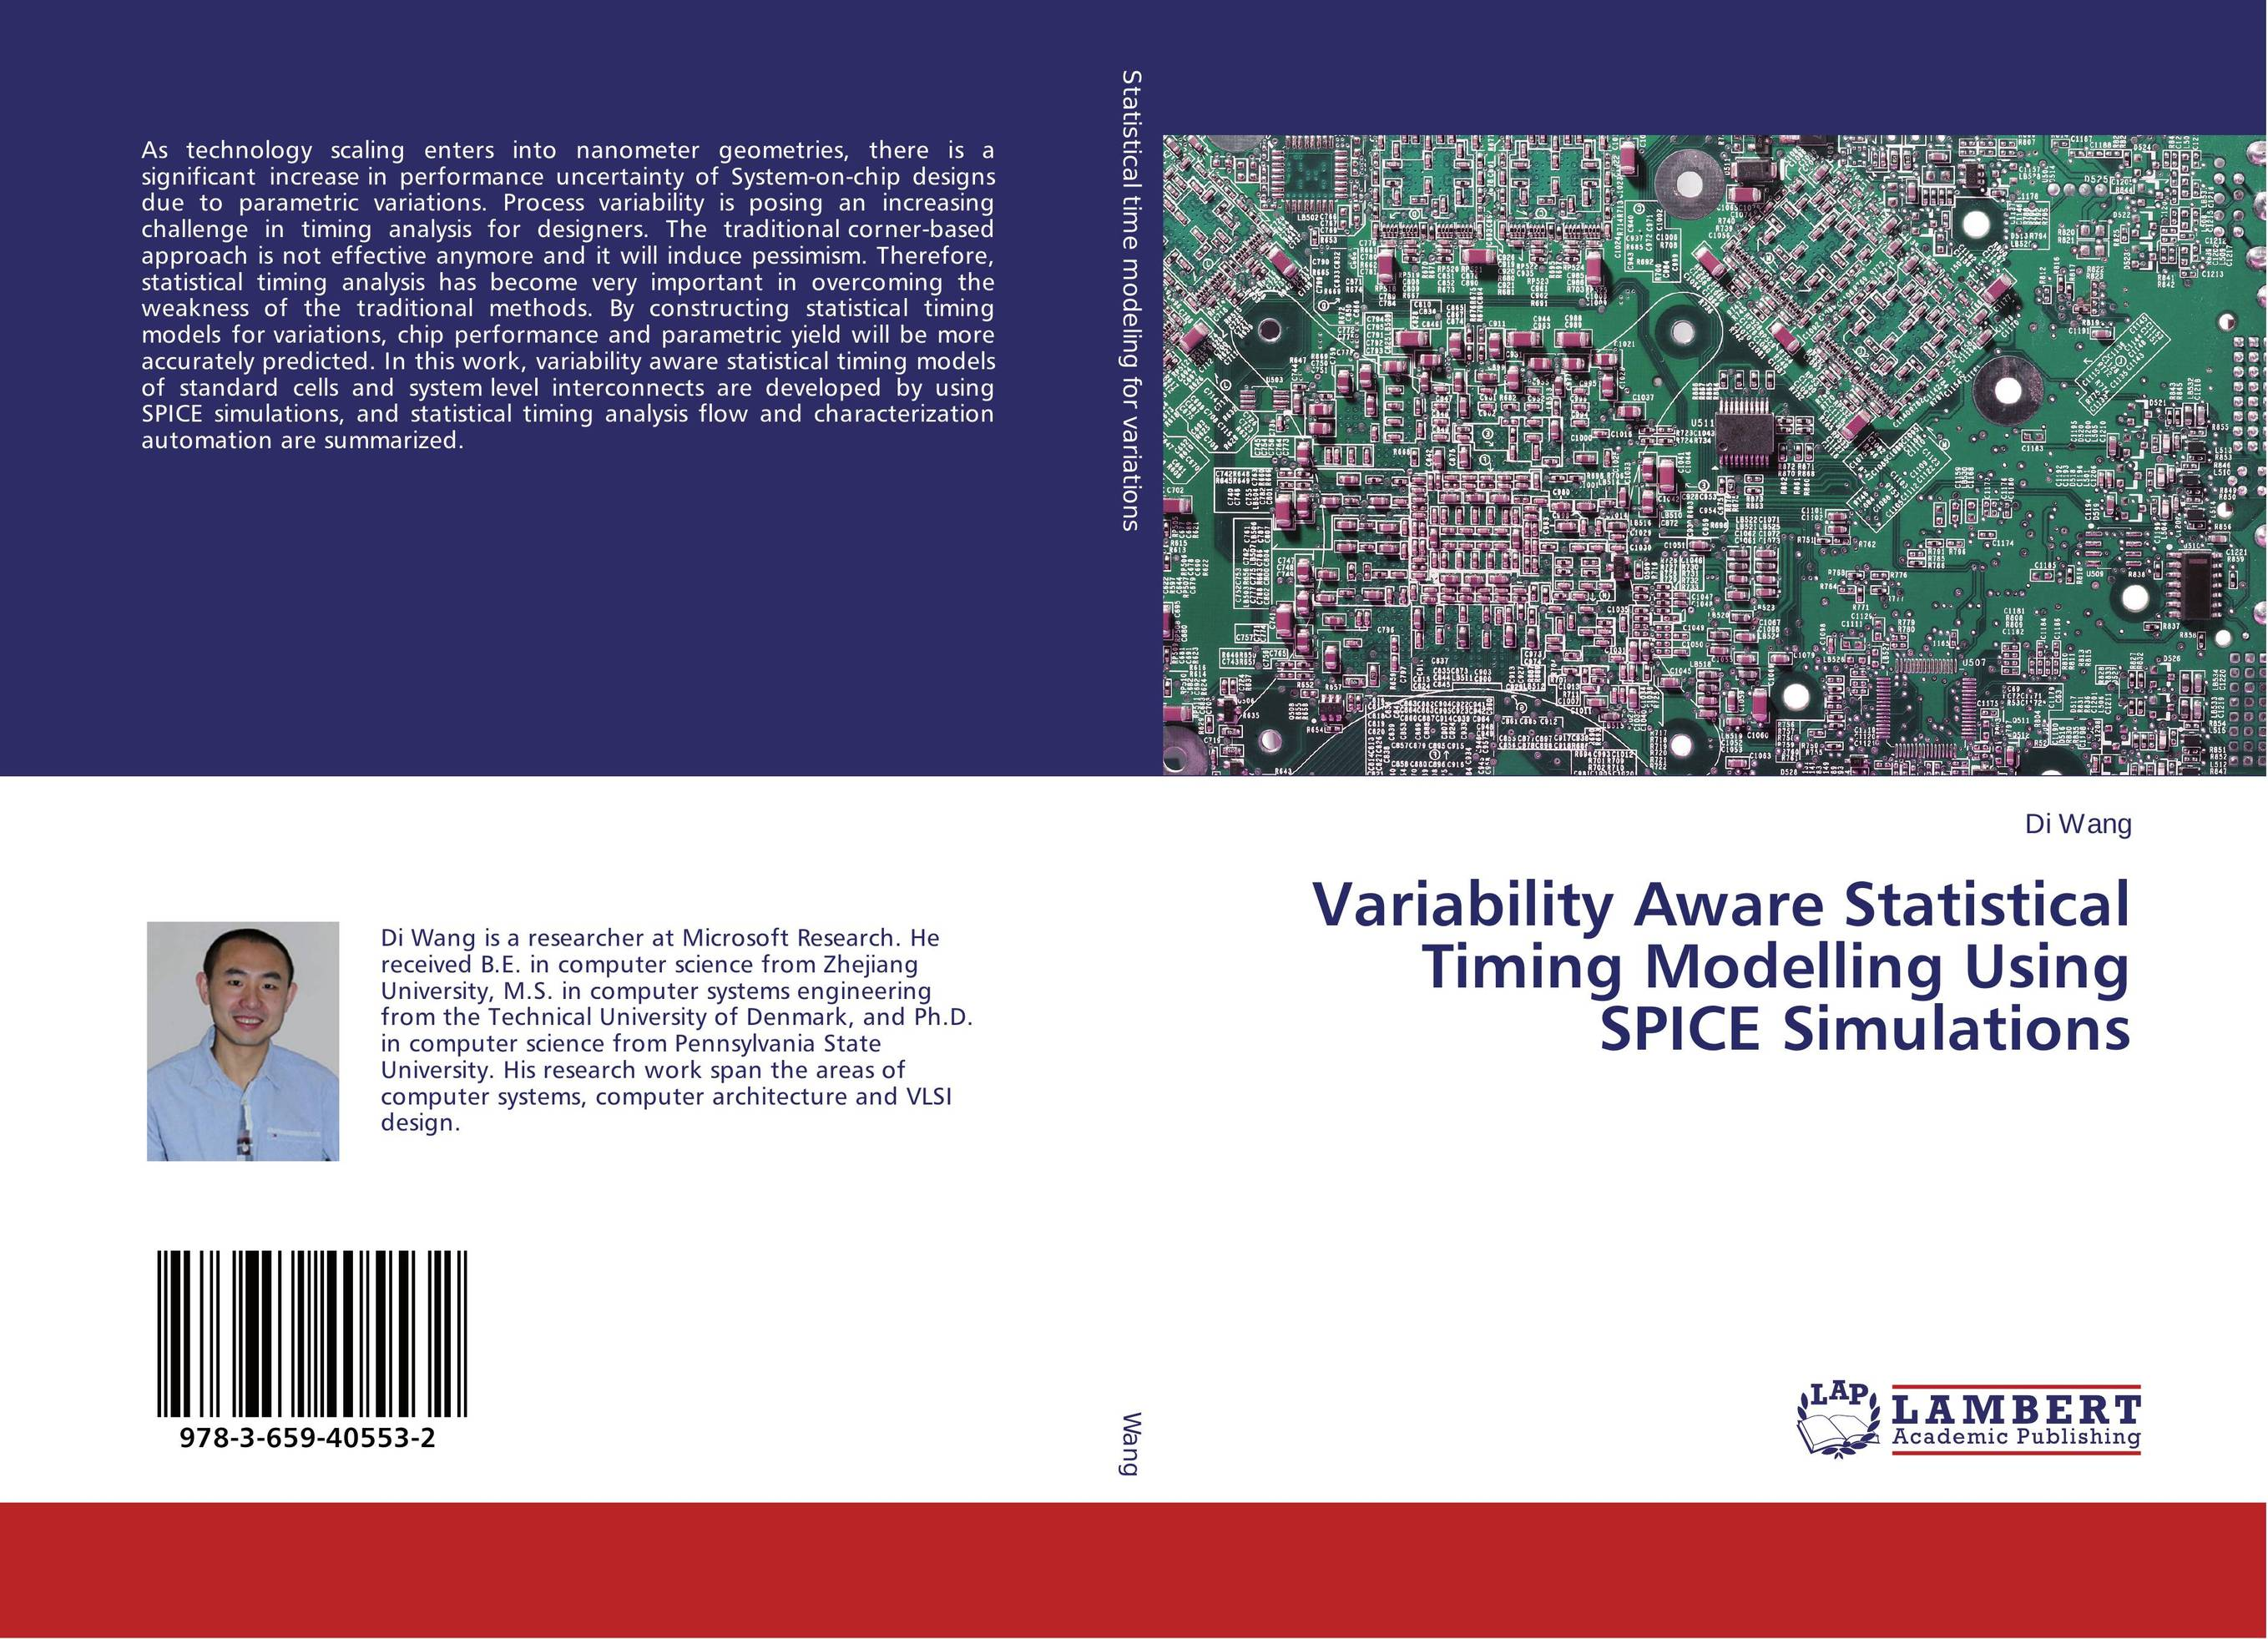 Variability Aware Statistical Timing Modelling Using SPICE Simulations a statistical approach in modelling maize prices volatility